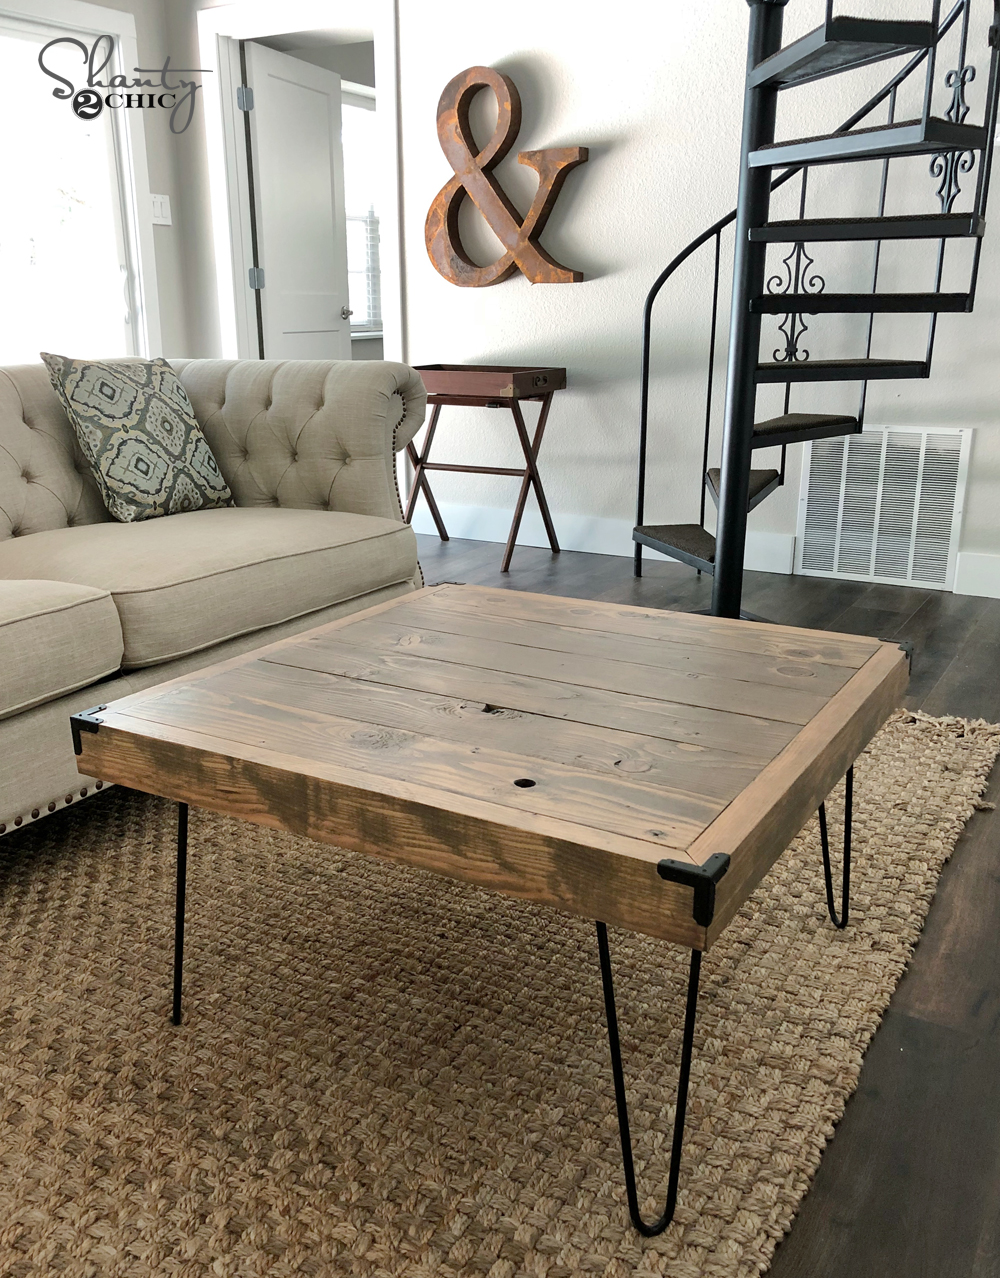 DIY $50 Square Hairpin Leg Coffee Table